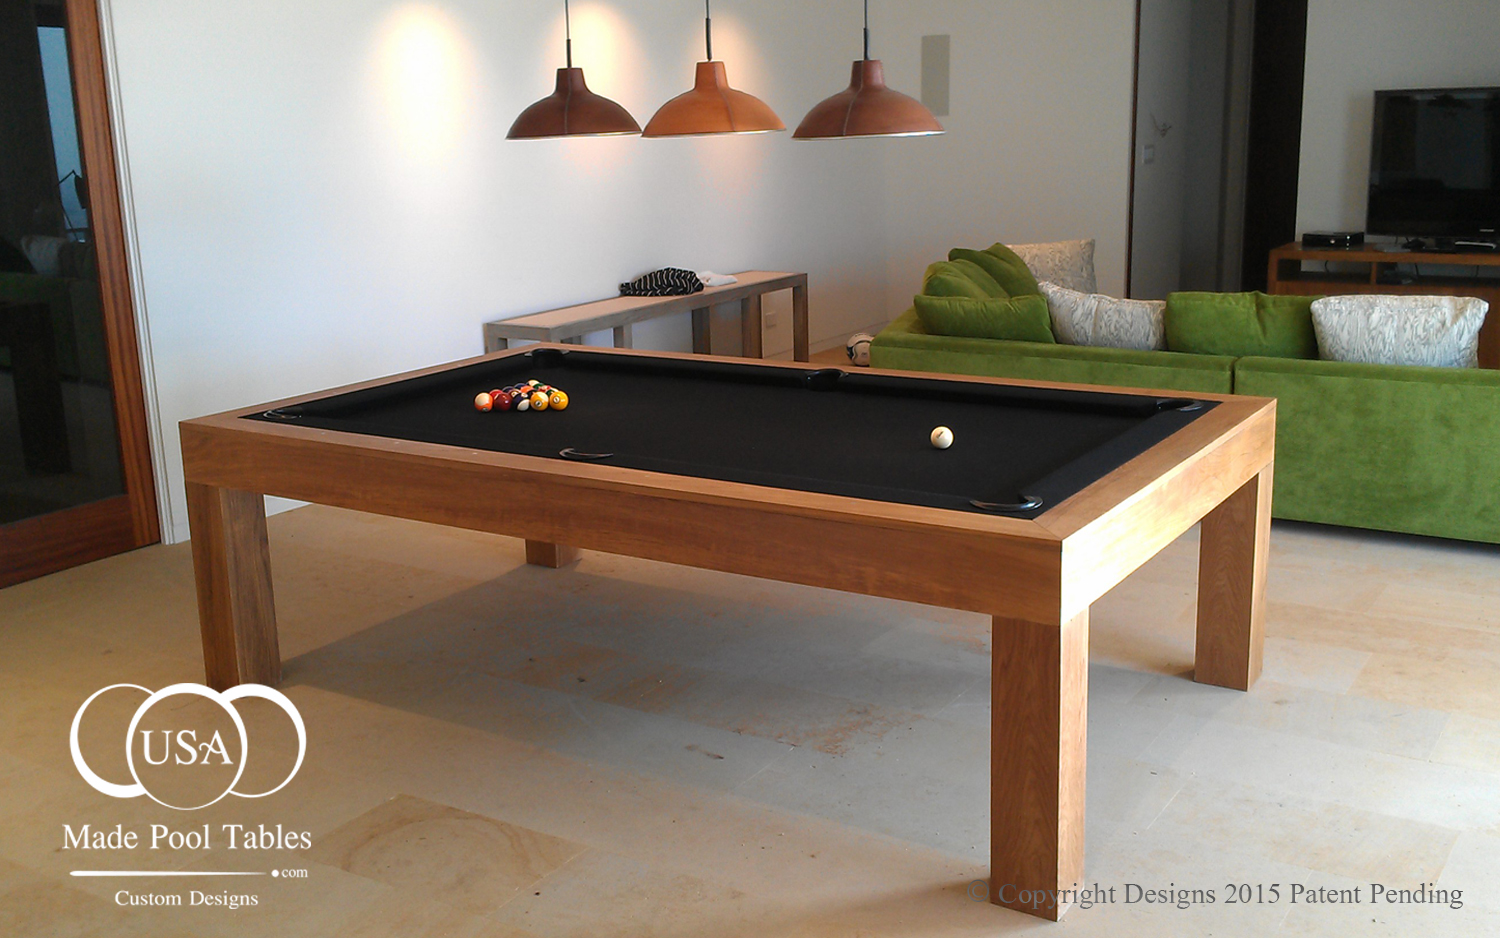 Pool tables pool table contemporary pool tables modern pool table bil - Billard table moderne ...